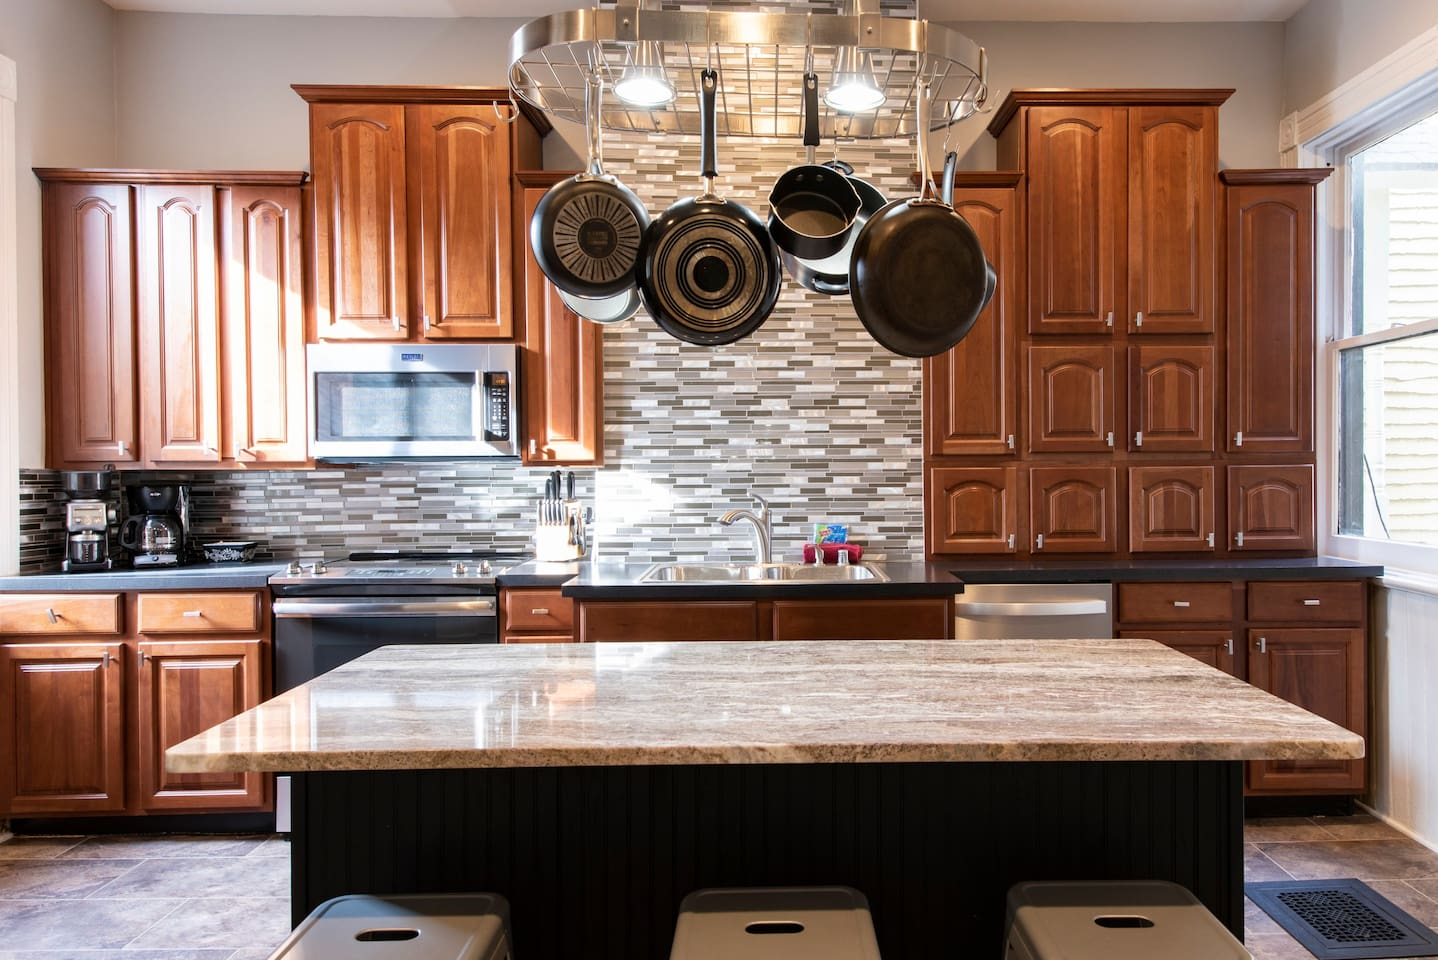 Large, remodeled kitchen with all new, state of the art appliances!  Fully stocked for preparing and serving gourmet meals.